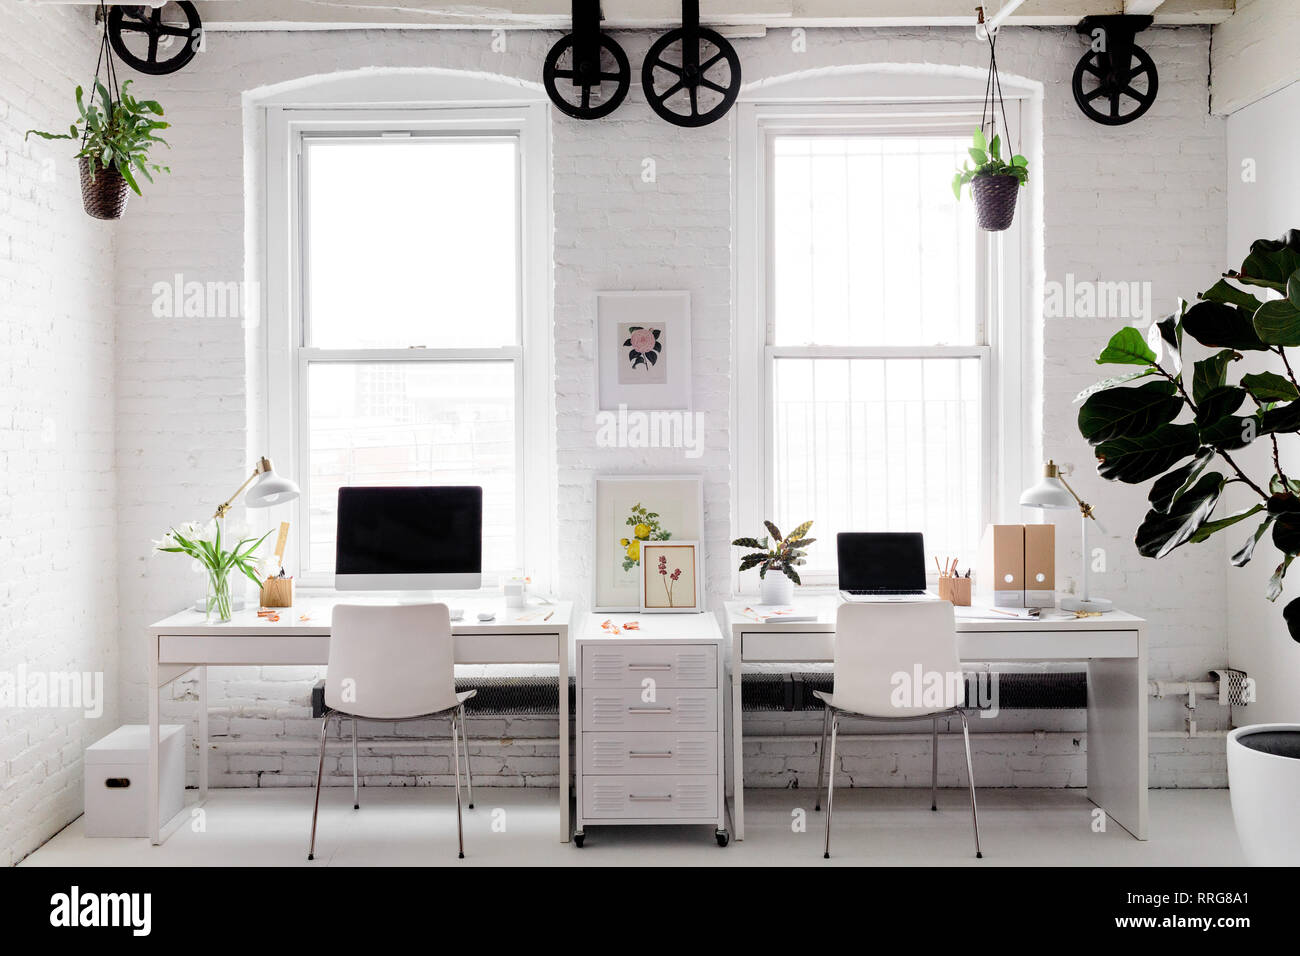 Monochromatic Modern Workplace with Floral Accents - Stock Image